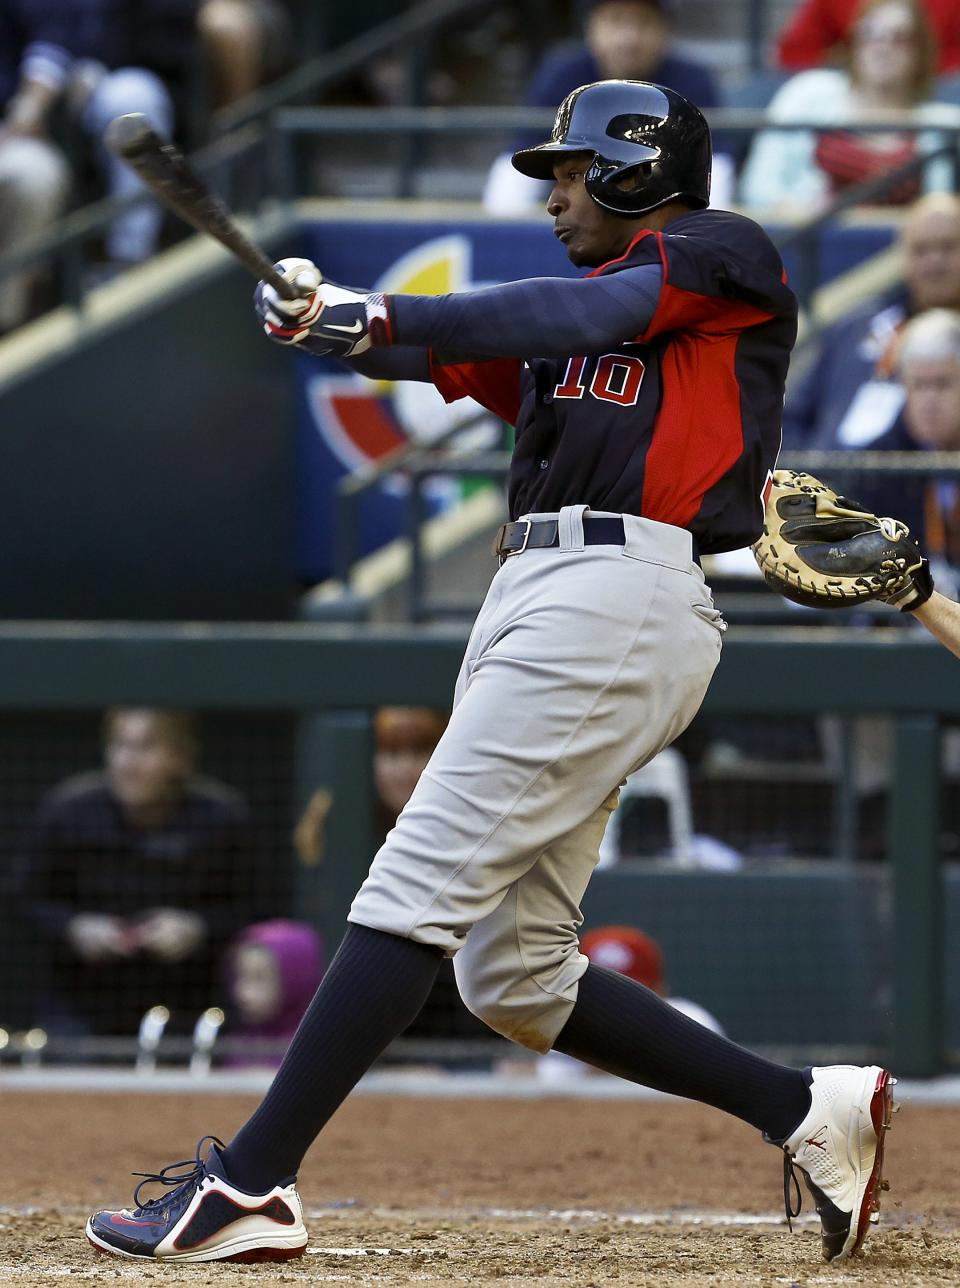 United States' Adam Jones connects with the ball in the ninth inning during a World Baseball Classic baseball game against Canada on Sunday, March 10, 2013, in Phoenix.  The United States defeated Canada 9-4. (AP Photo/Ross D. Franklin)